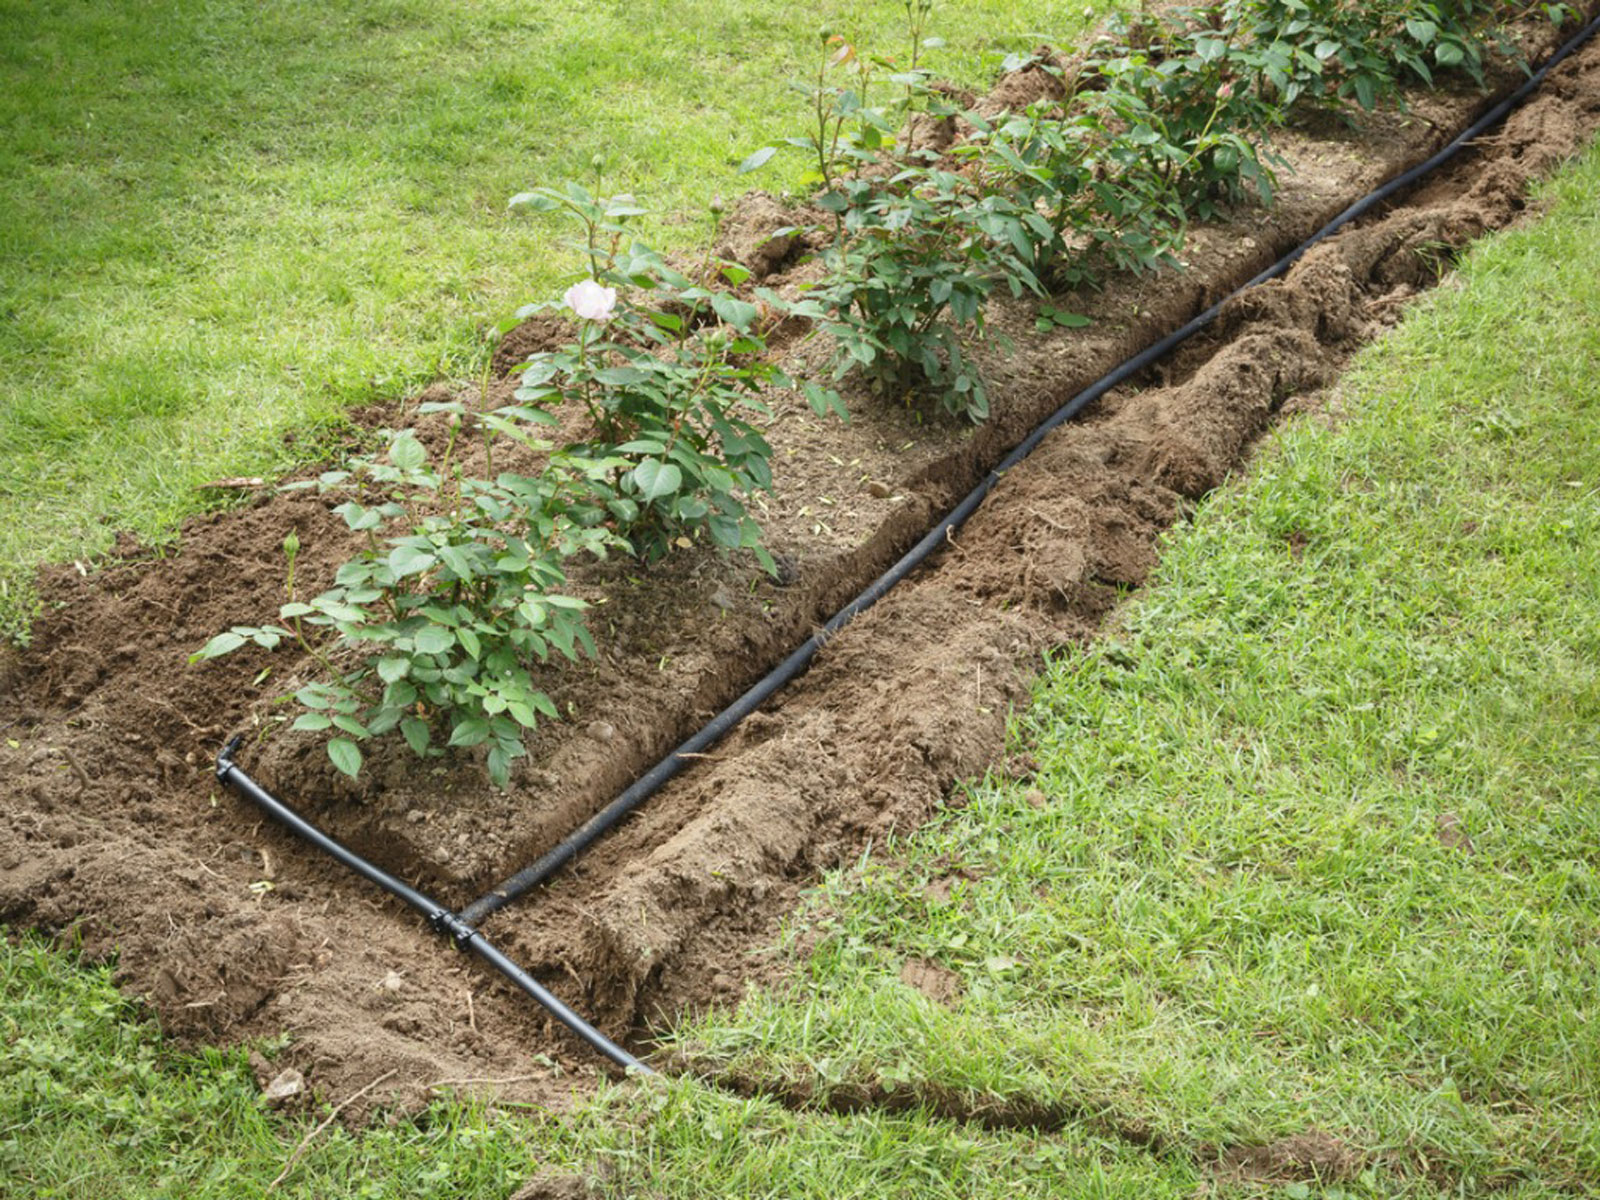 A Guide to Plumbing Irrigation Systems for Gardens